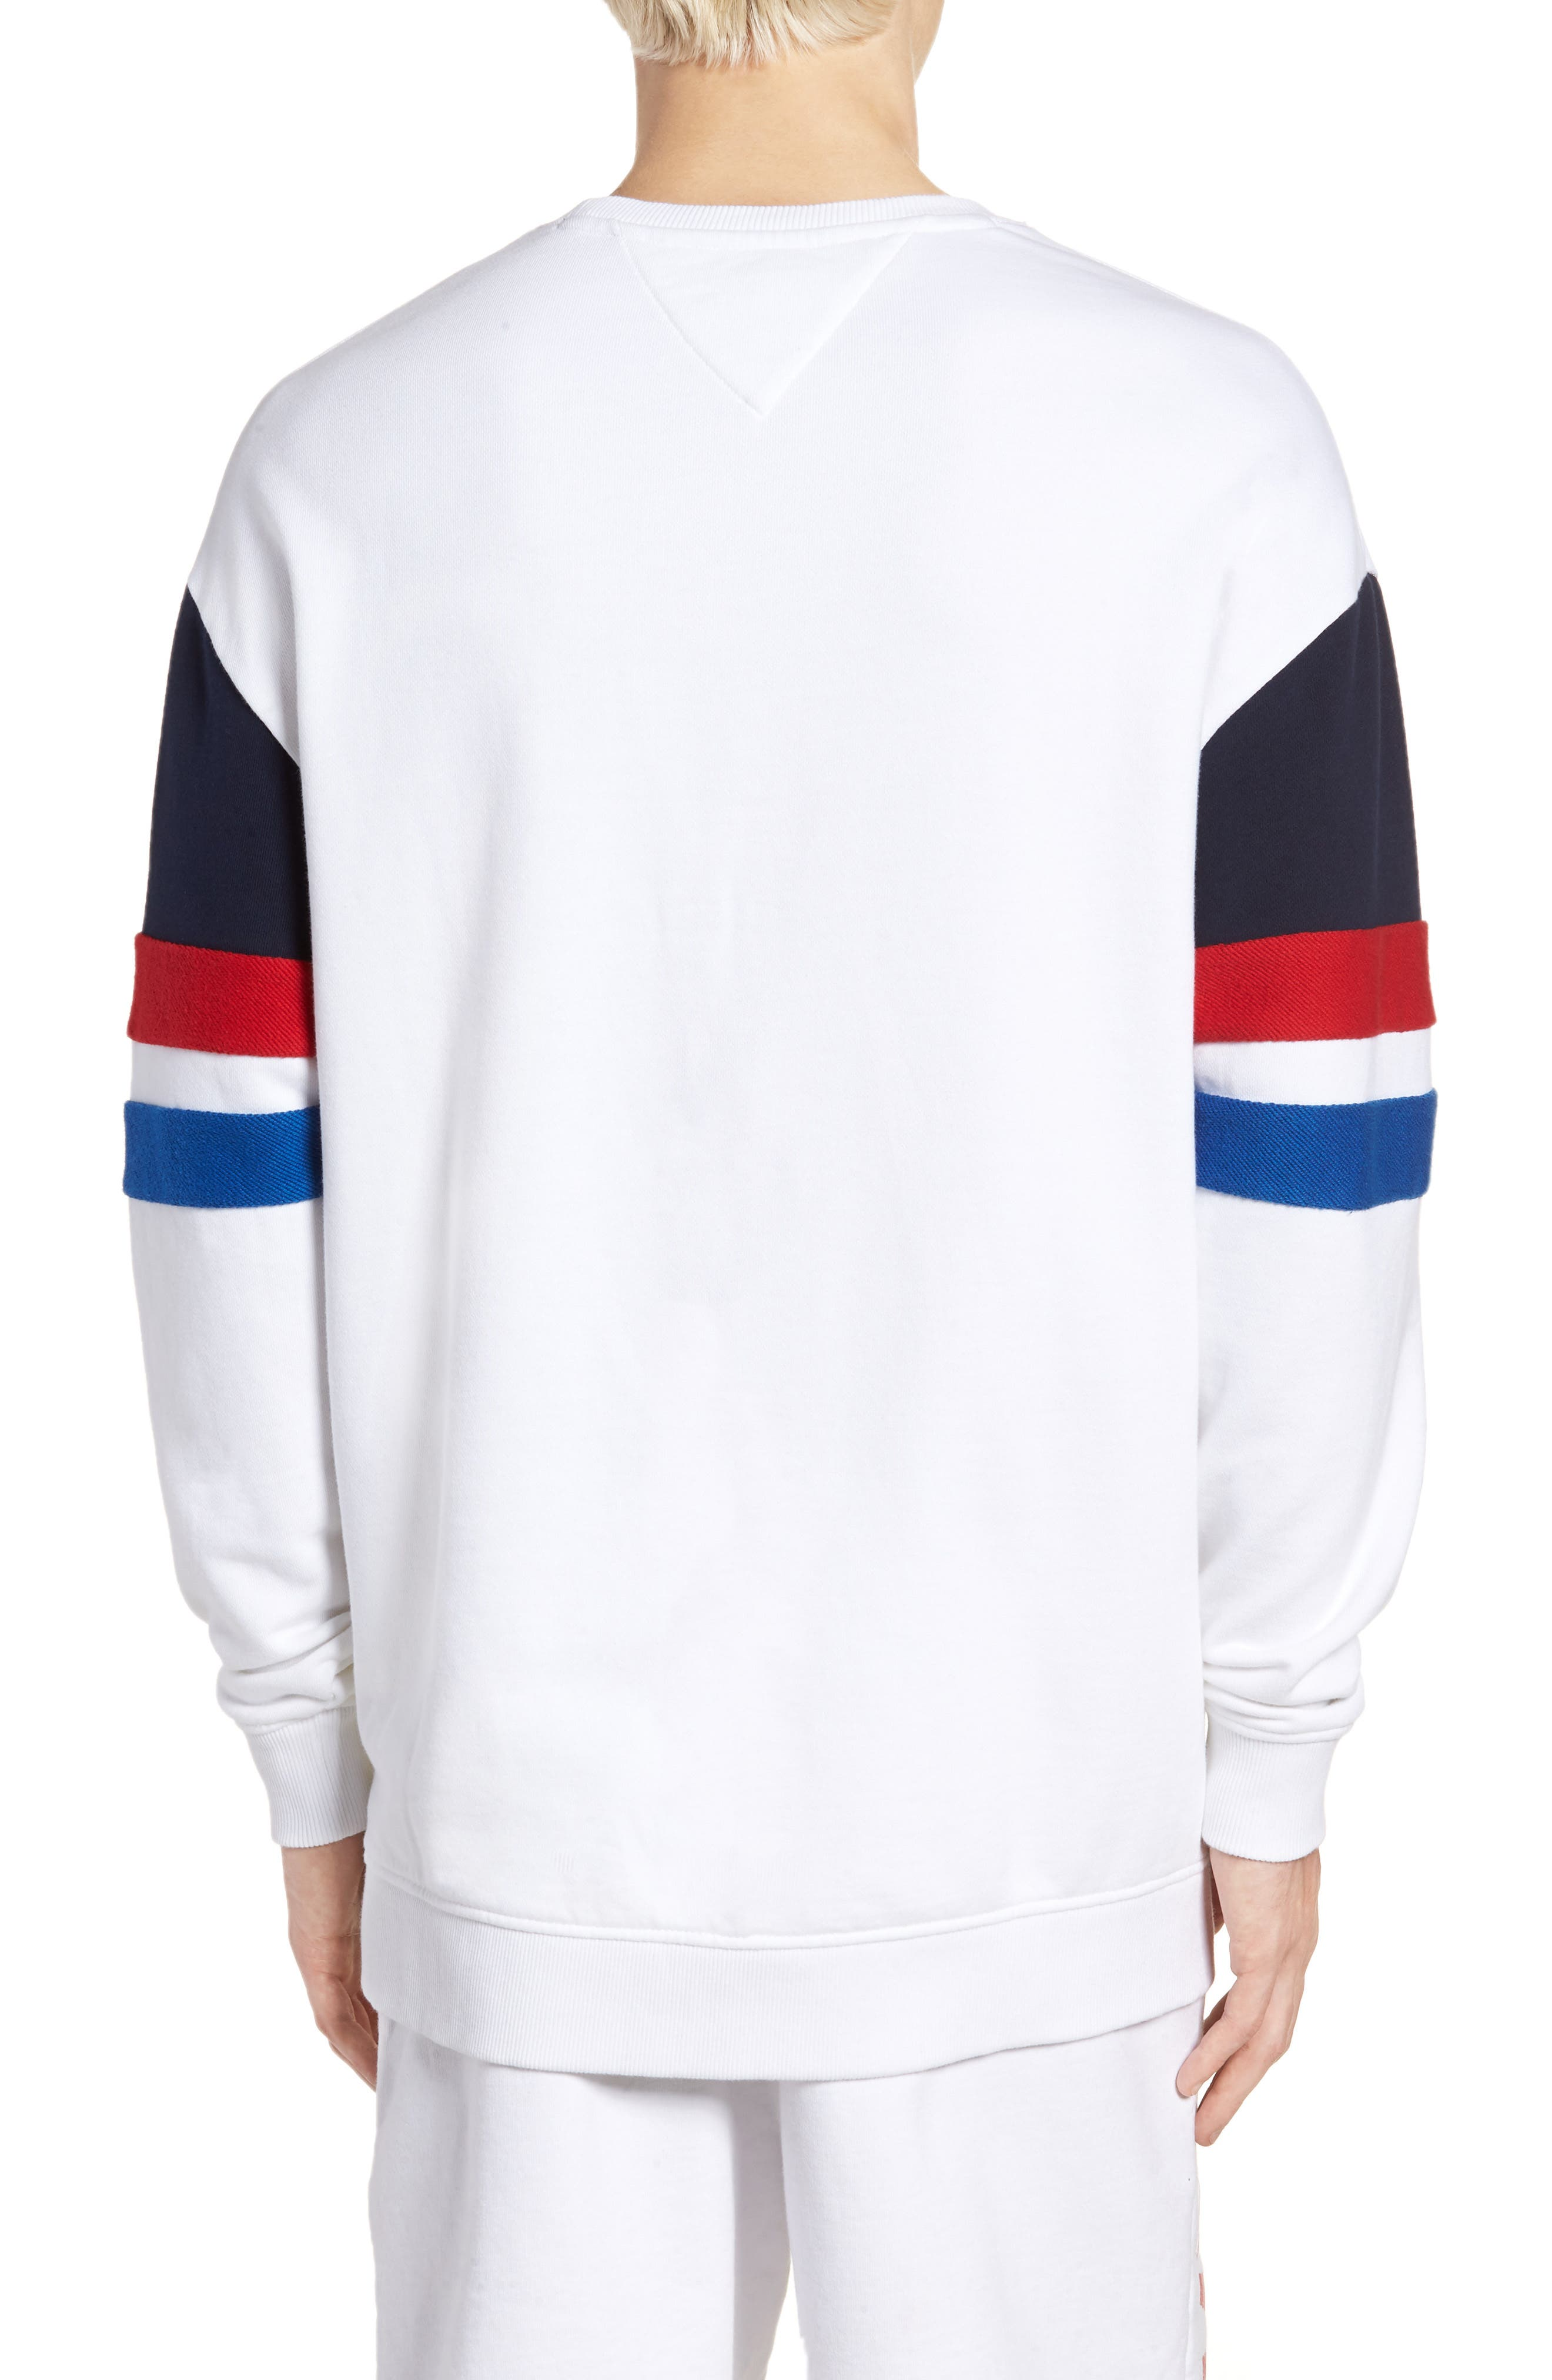 Colorblock Sweatshirt,                             Alternate thumbnail 2, color,                             Classic White / Multi